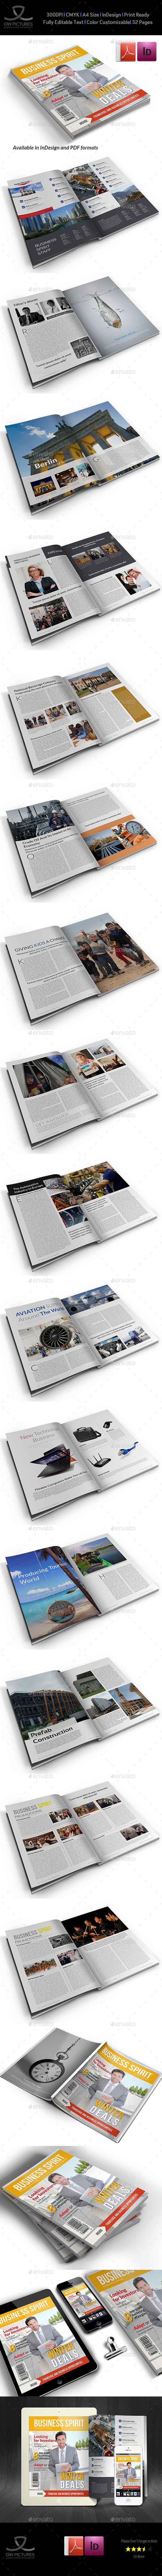 GraphicRiver Business Spirit Newsletter Magazine 32 Pages V.2 9661881